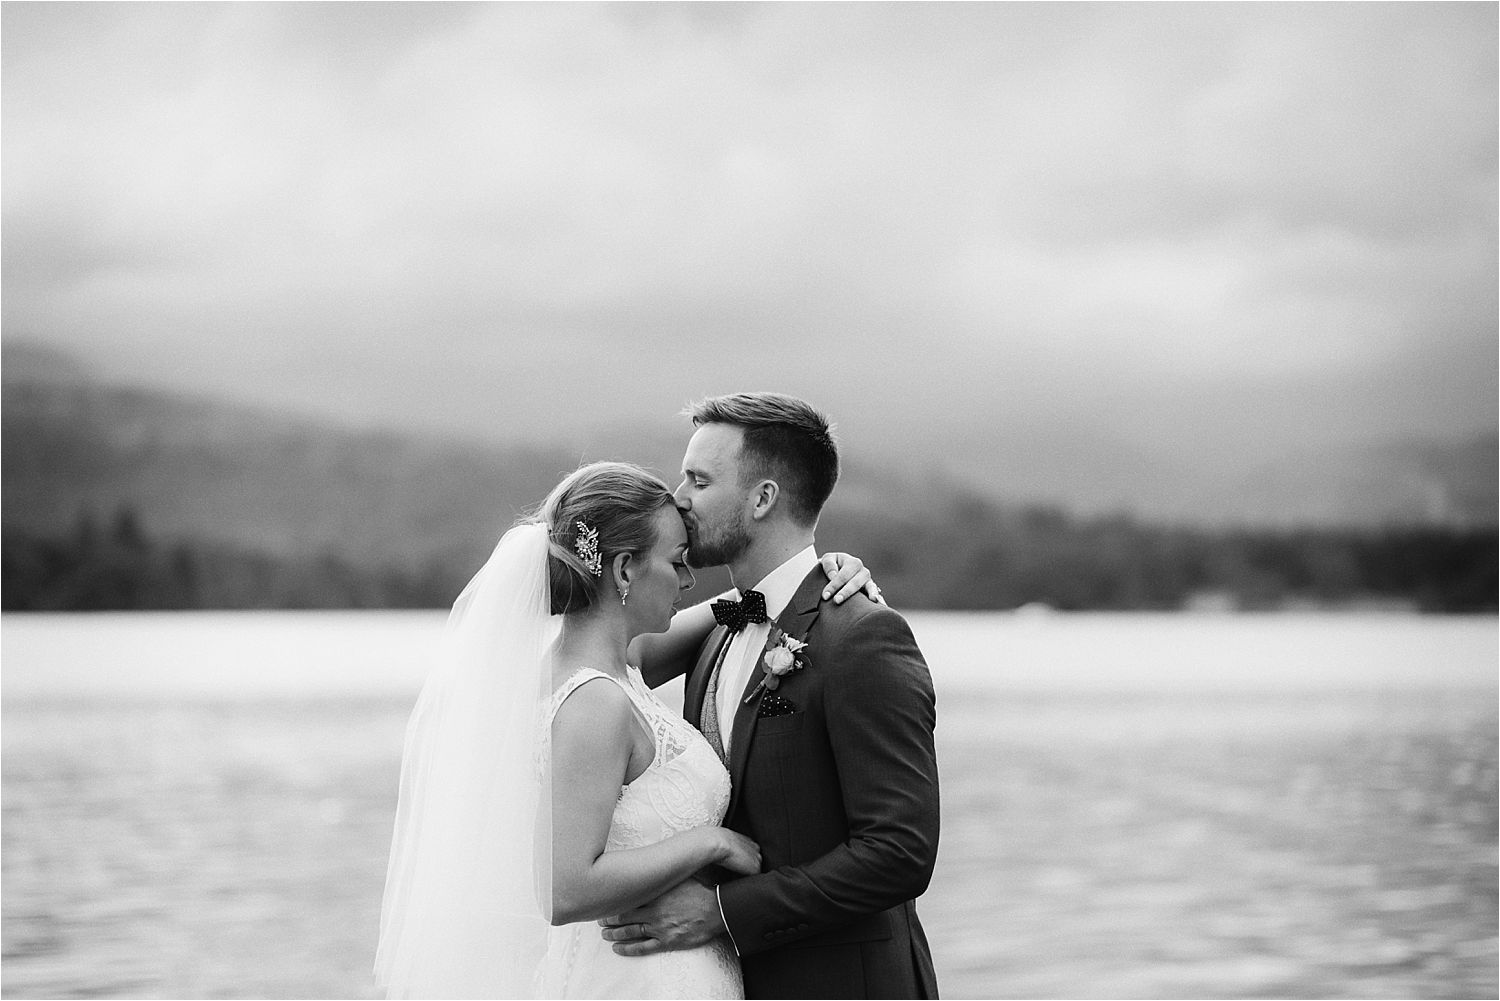 Bridegroom kisses ride's forehead on jetty at Lake Disrtict wedding.